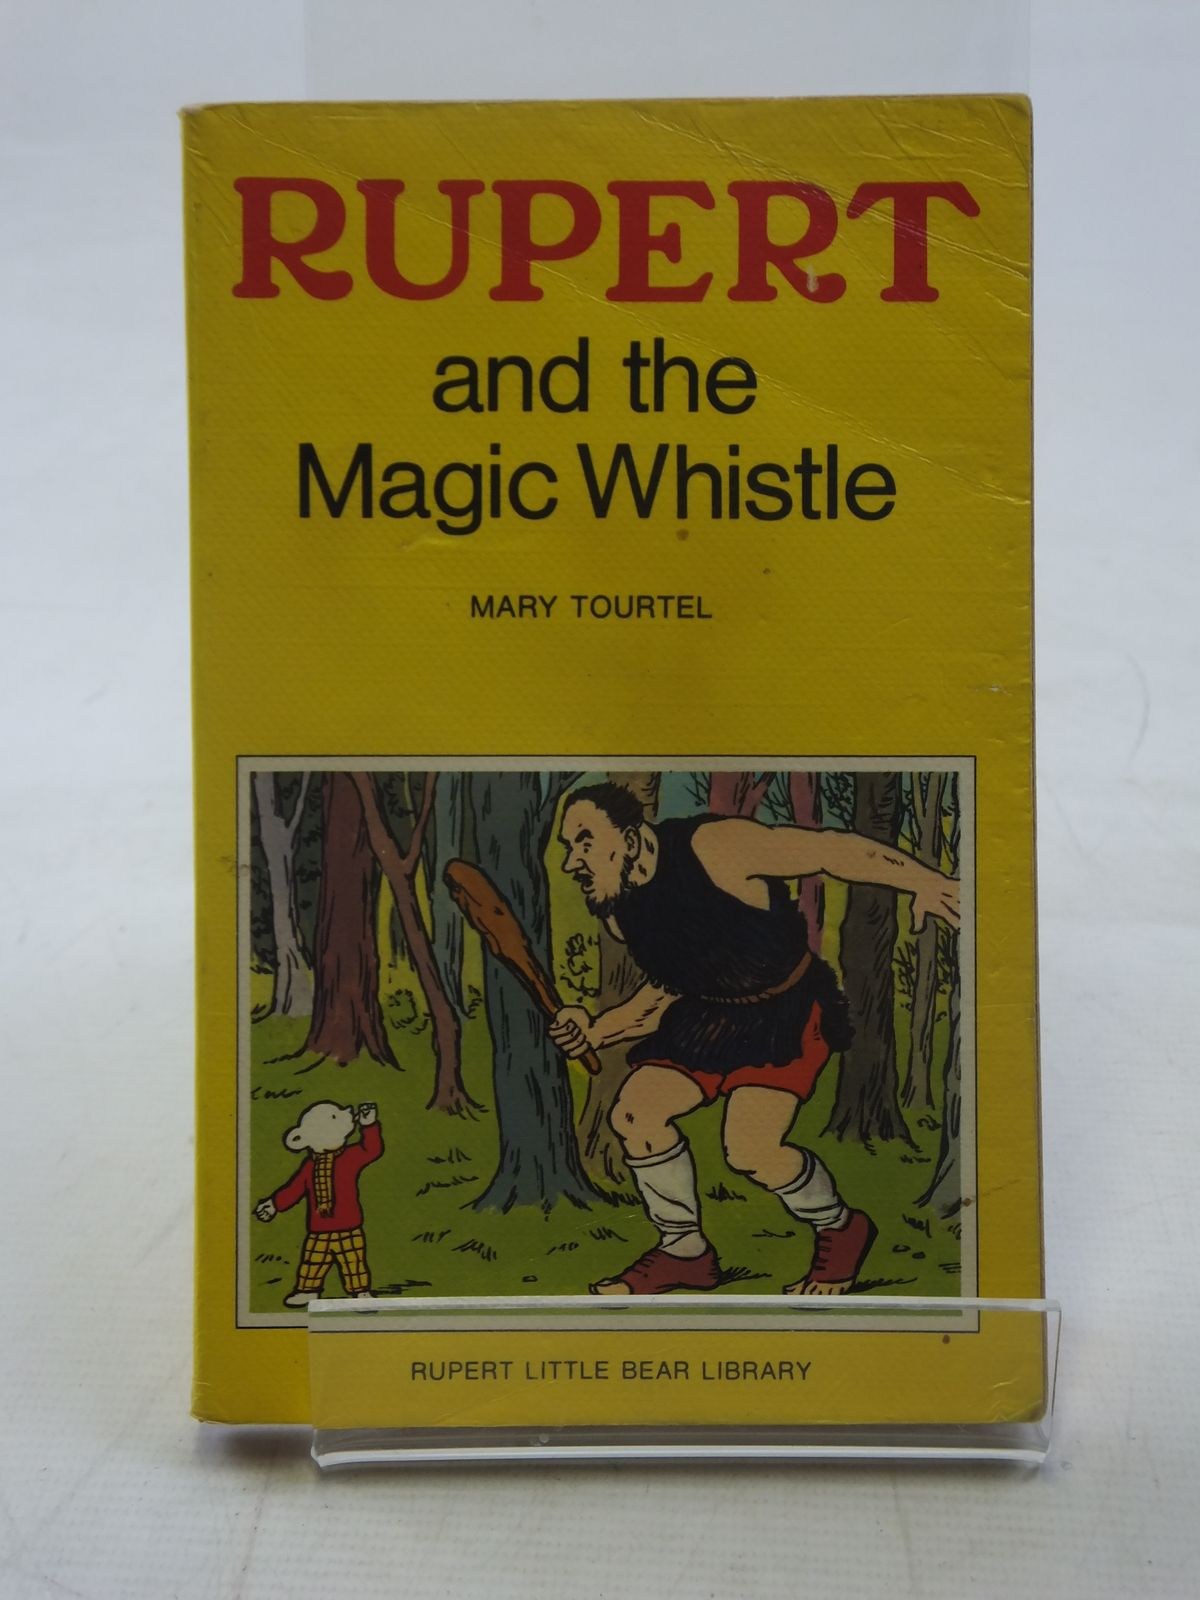 Photo of RUPERT AND THE MAGIC WHISTLE - RUPERT LITTLE BEAR LIBRARY No. 9 (WOOLWORTH) written by Tourtel, Mary illustrated by Tourtel, Mary published by Sampson Low, Marston & Co. Ltd. (STOCK CODE: 2117147)  for sale by Stella & Rose's Books